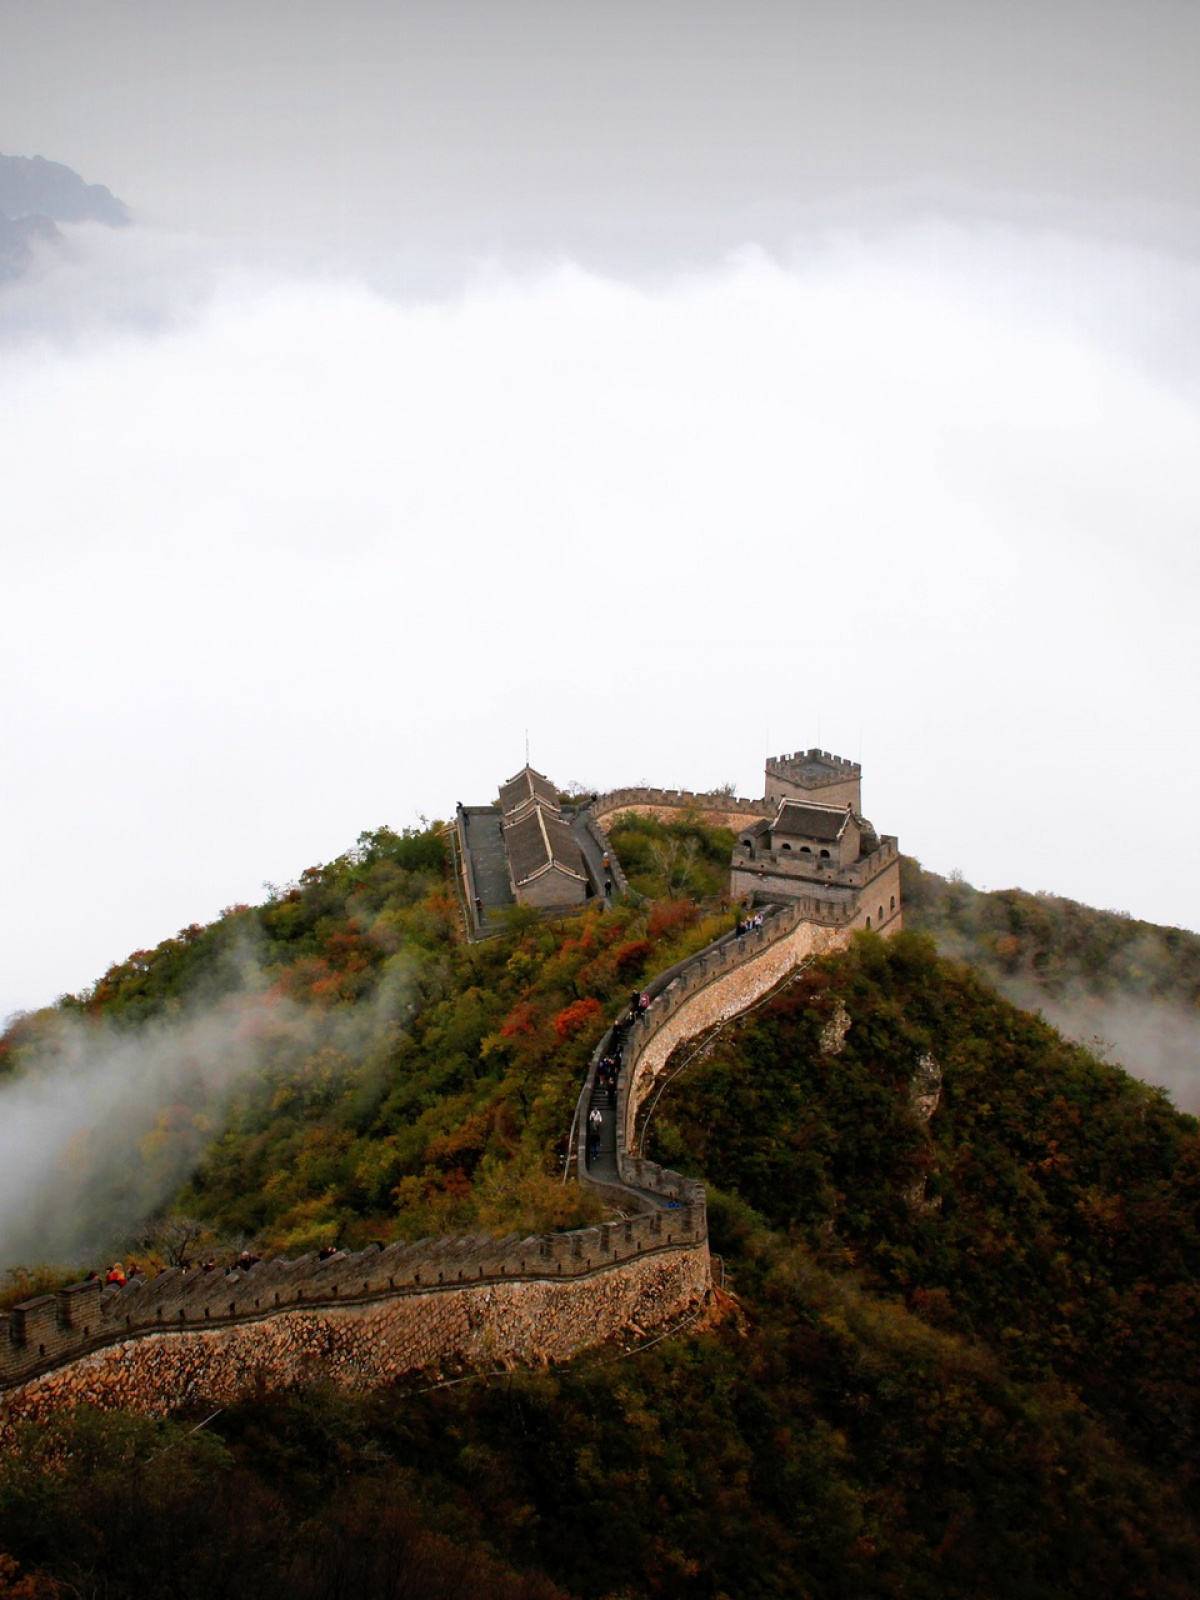 Most Inspiring Wallpaper High Quality Mobile - 1200-The-Great-Wall-l  Pic_164299.jpg